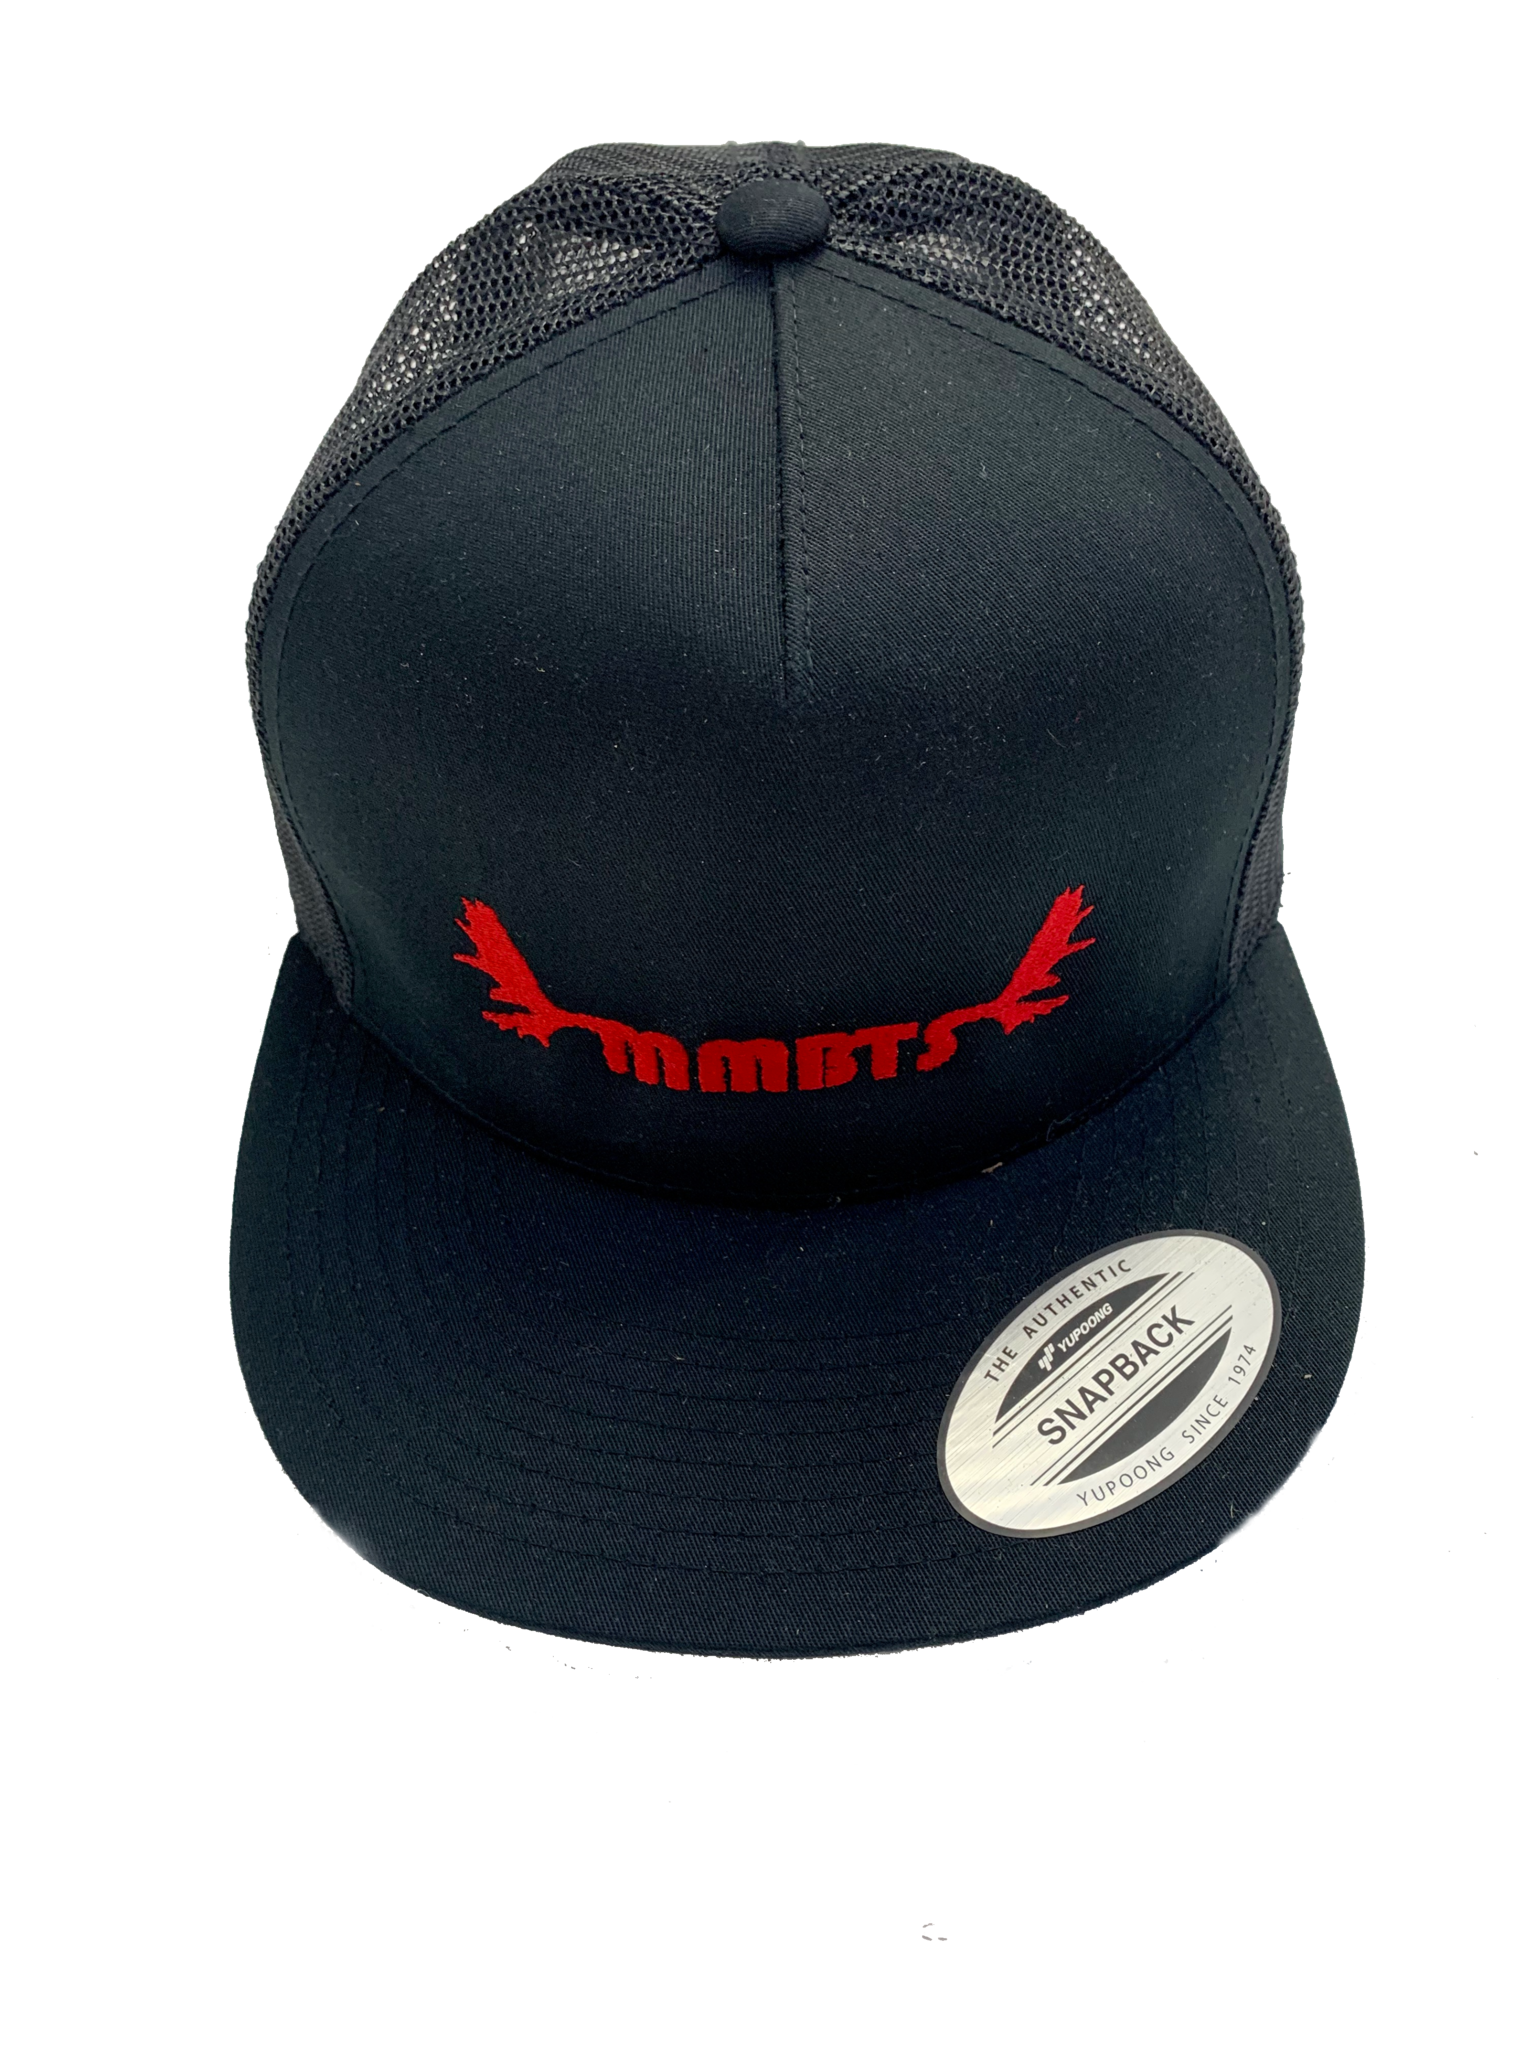 MMBTS Snap-back Hat-1